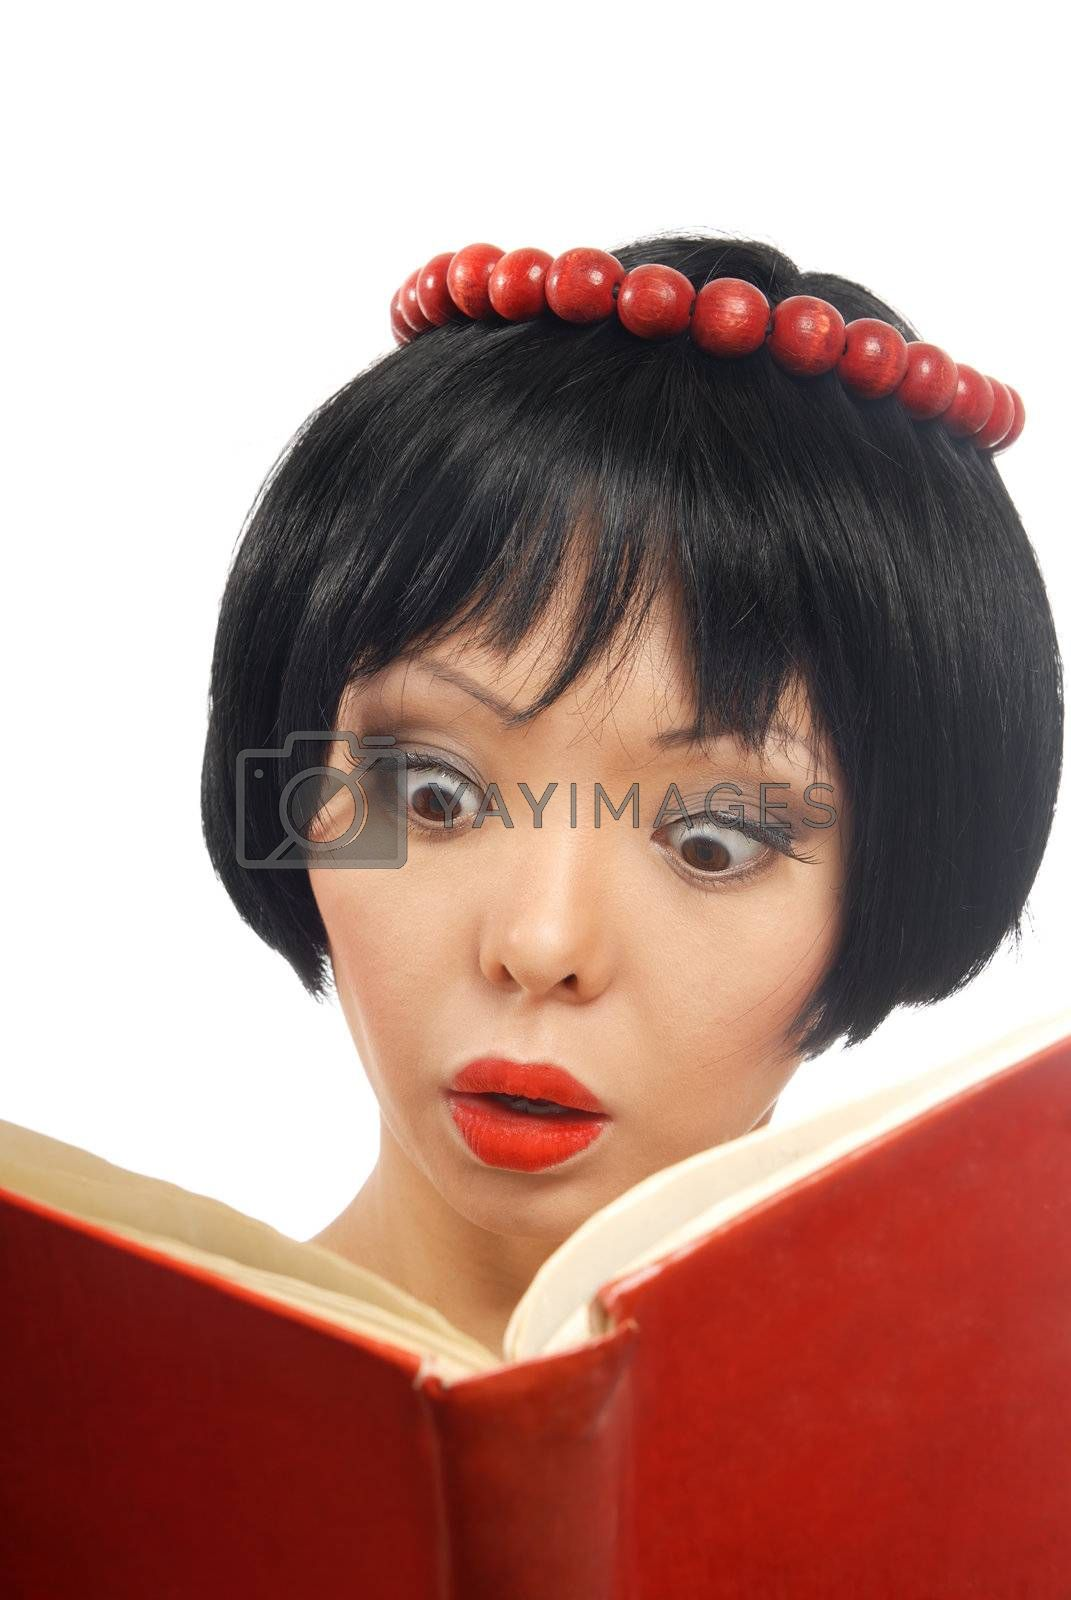 Emotional photo of the pretty model reading the red book